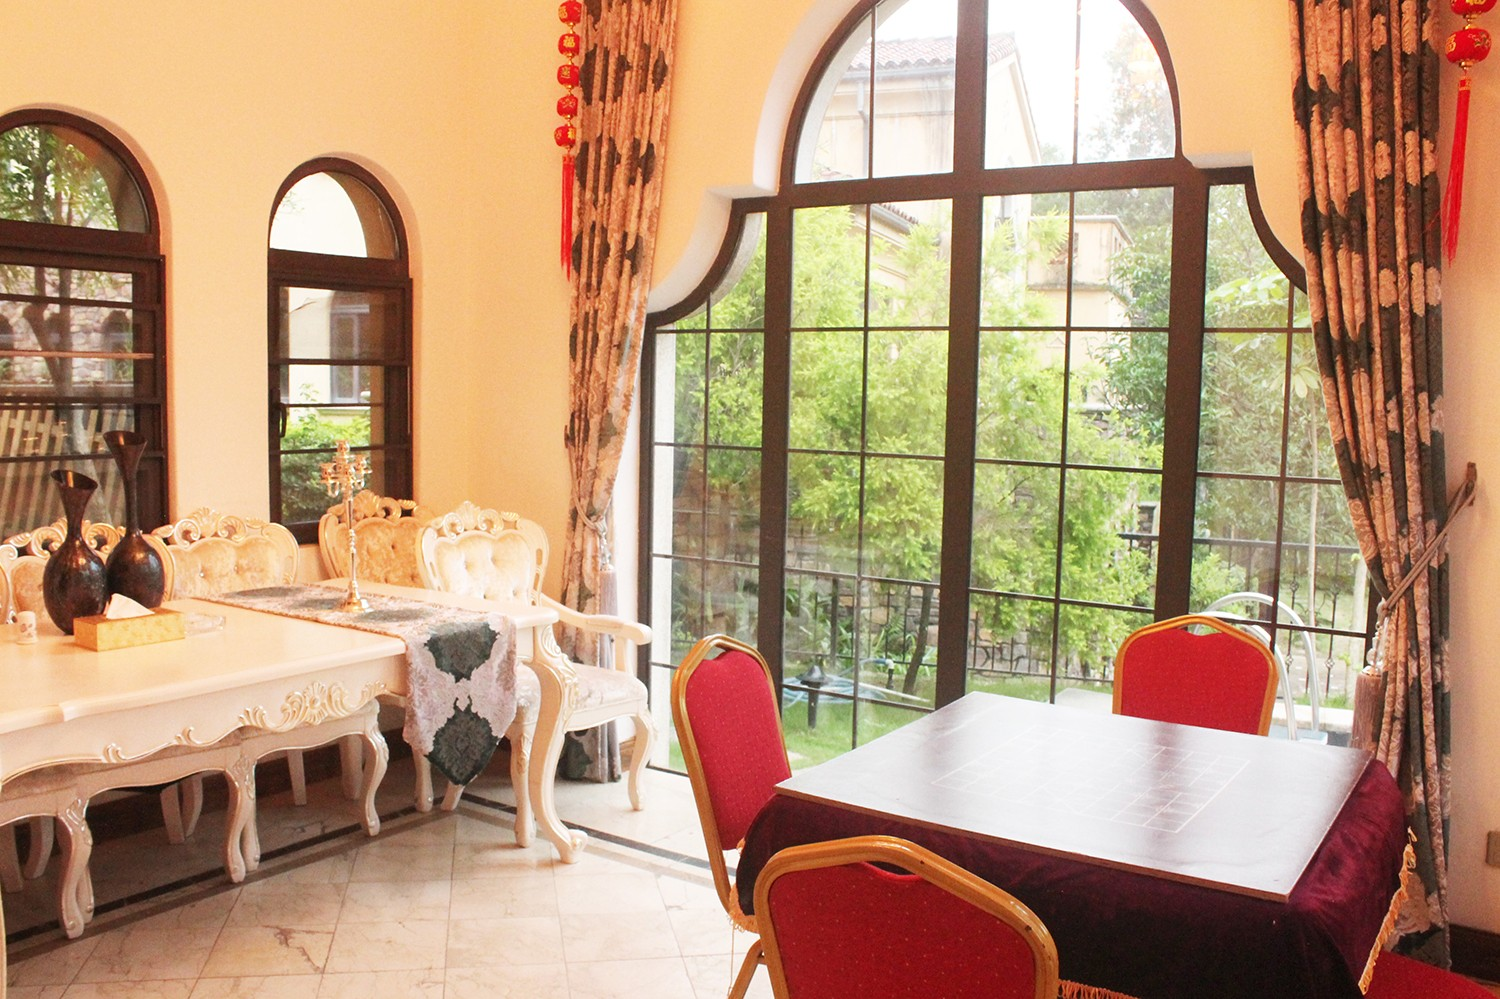 Where is Guangzhou villa recommended for fun